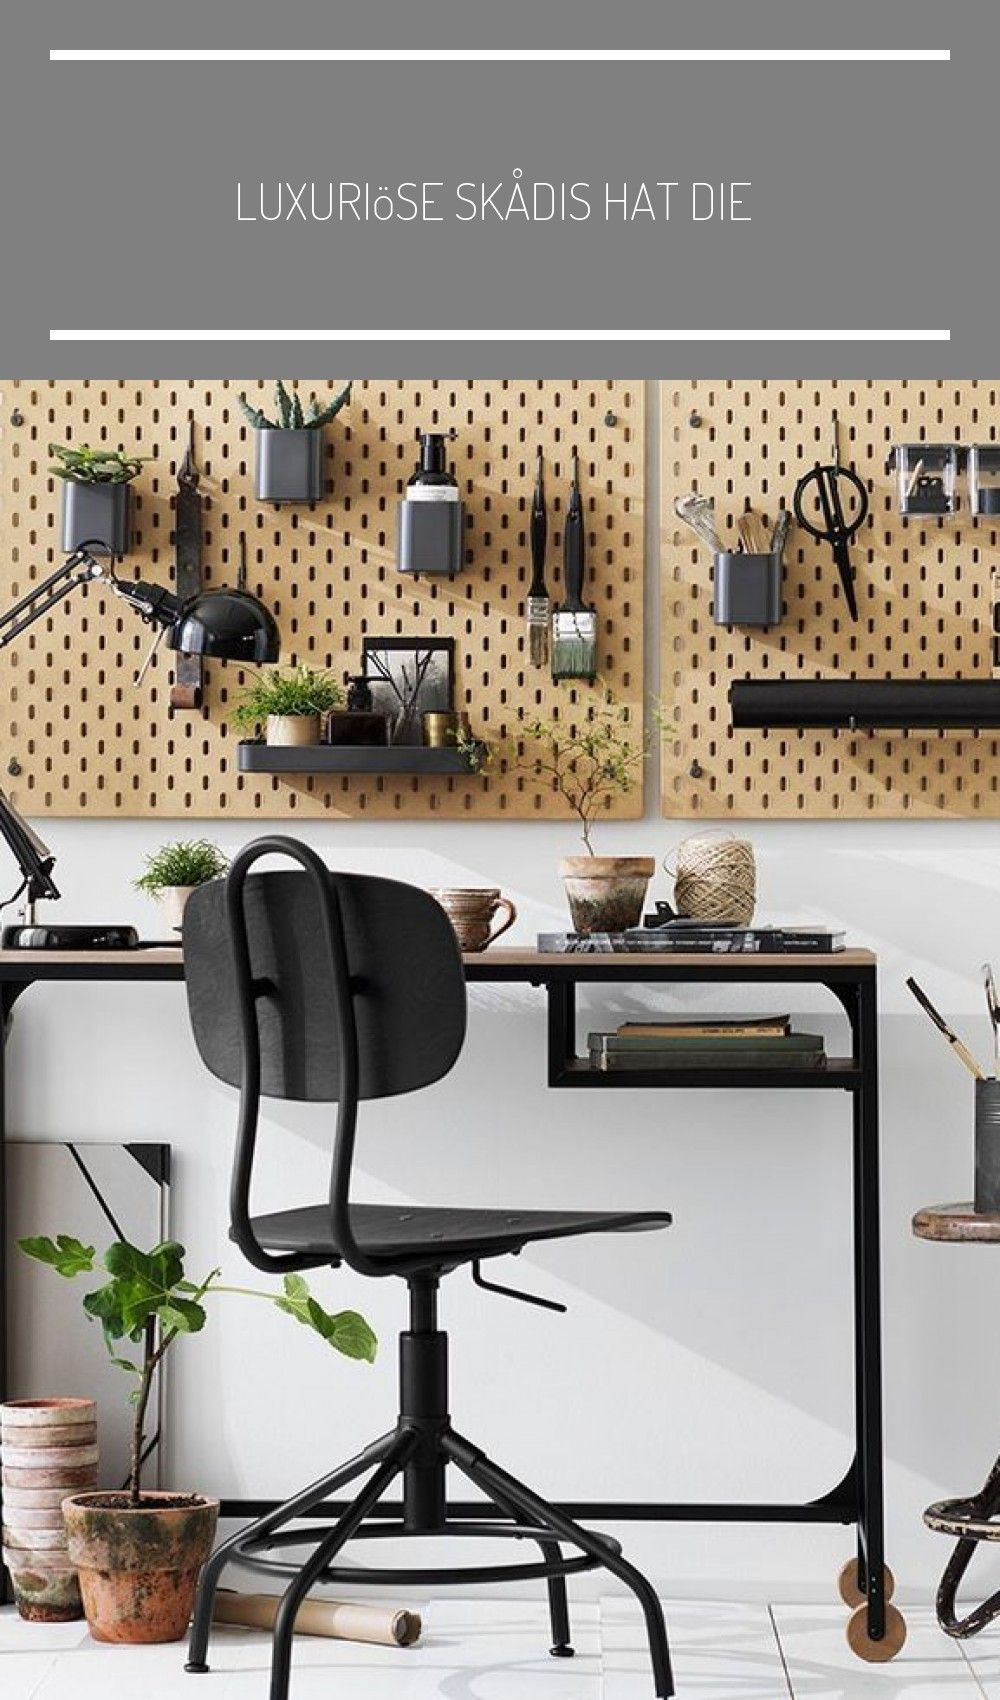 Pin By Shyanne Krajcik On Furniture In 2021 Ikea Inspiration Home Office Decor Home Office Design